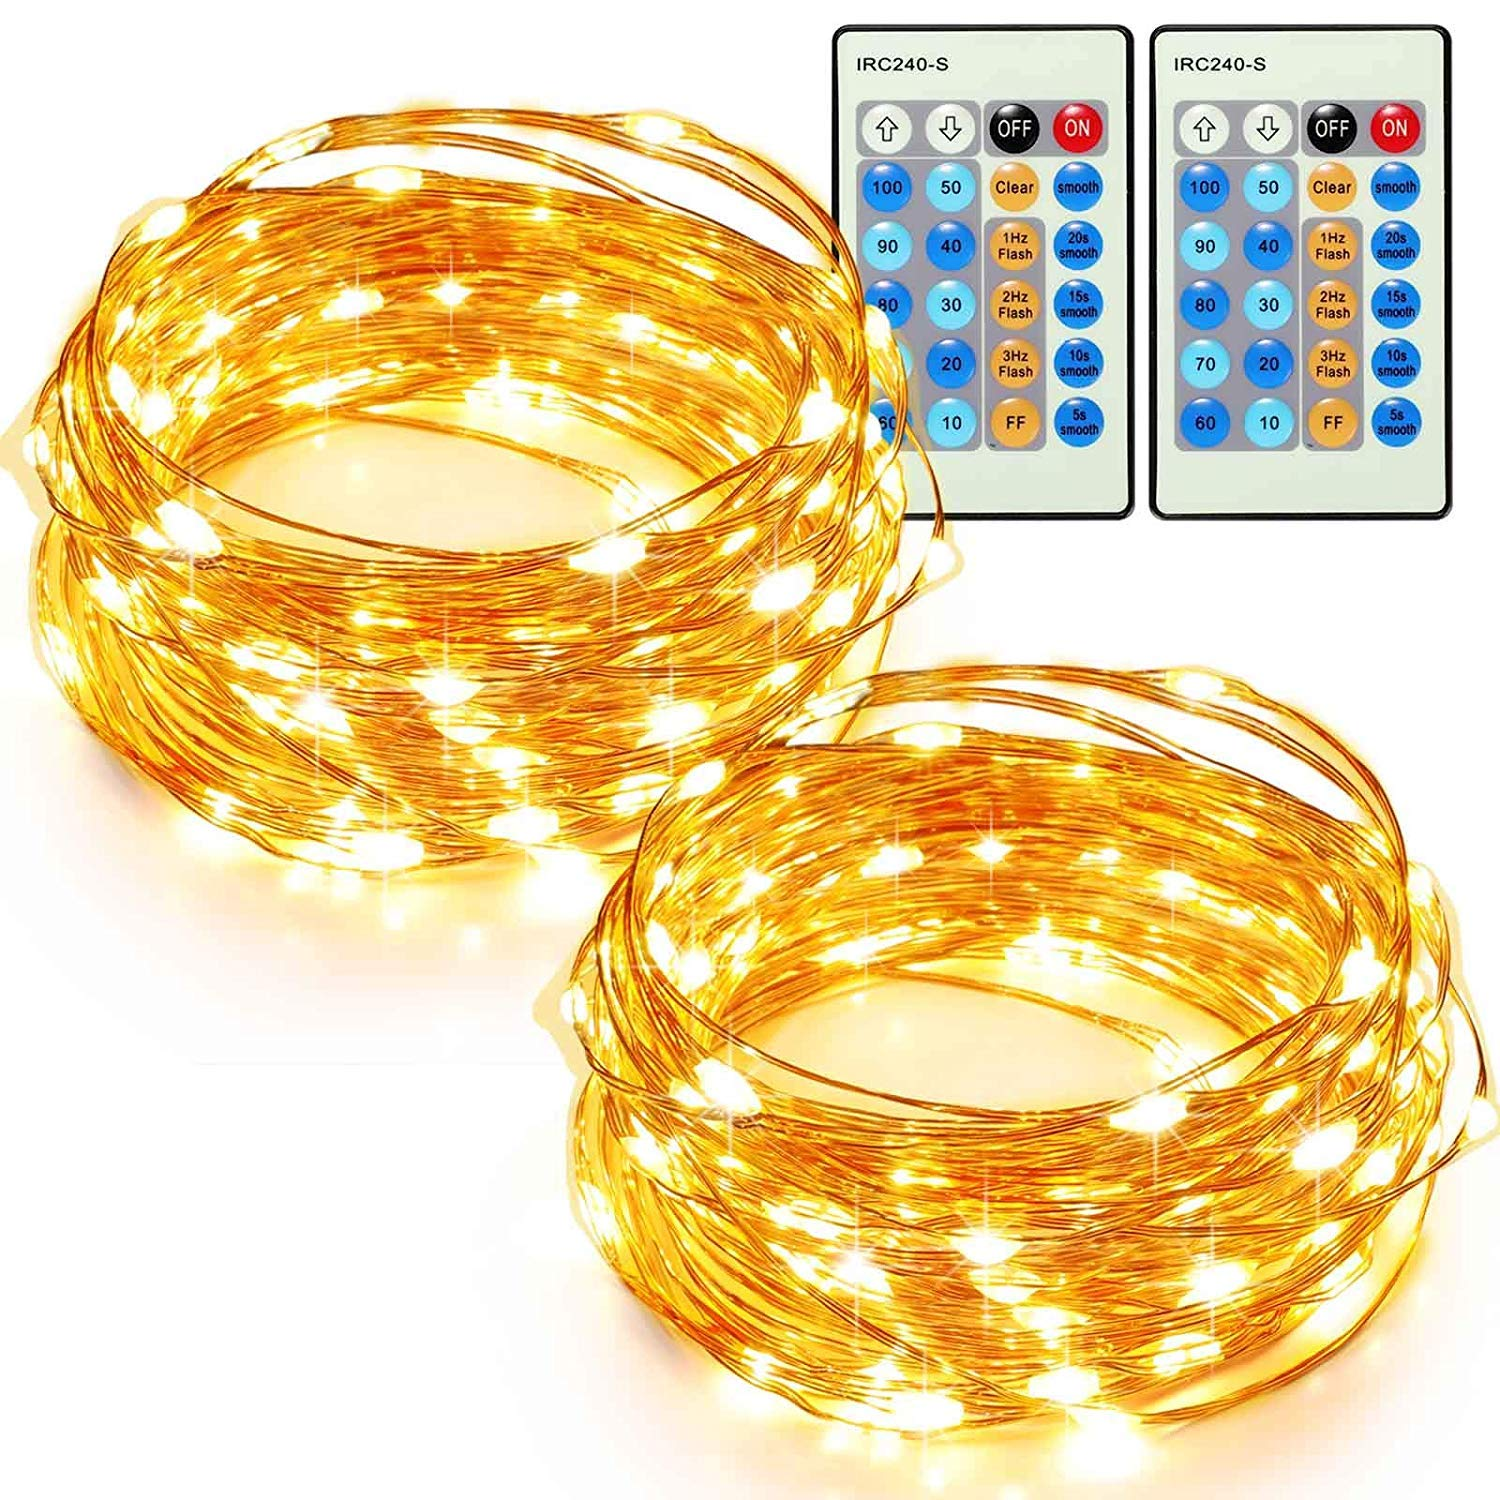 TaoTronics 33ft 100 LED String Lights 2 Pack Dimmable with Remote Control, Waterproof Decorative Lights for Bedroom, Patio, Garden, Gate, Yard, Parties, Wedding (Renewed)